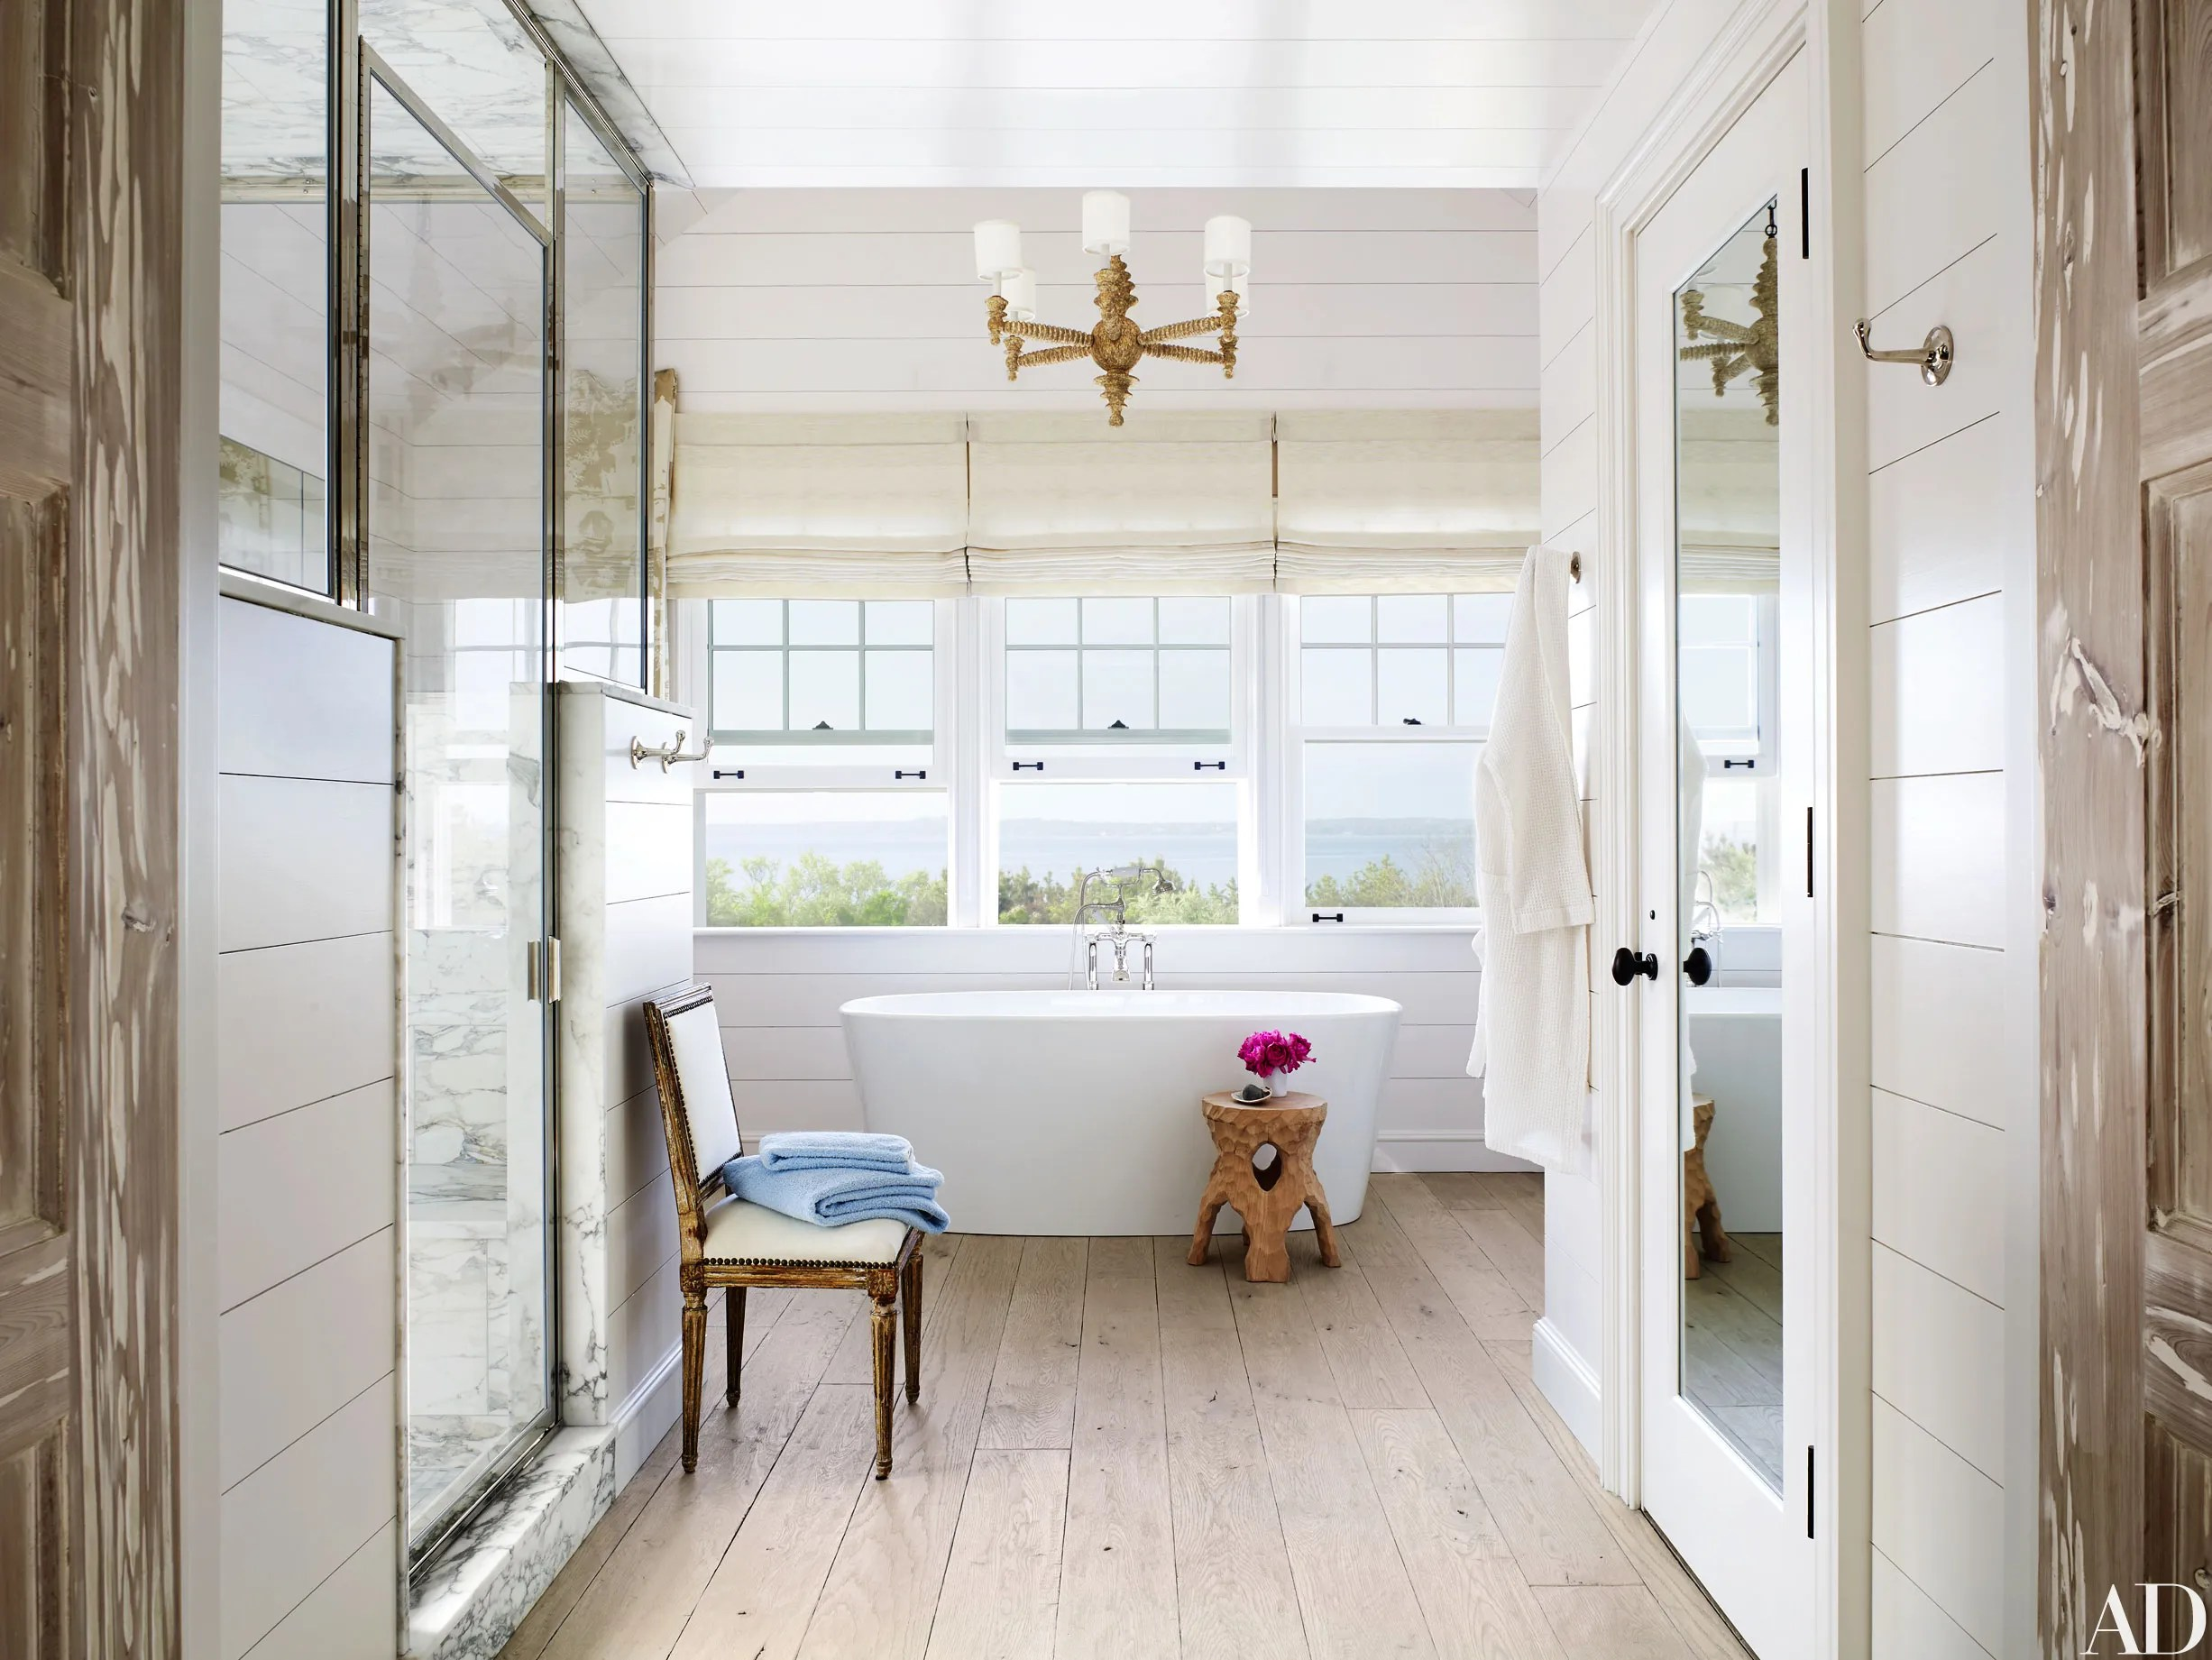 42 Exquisite Tubs To Inspire Your Next Bathroom Renovation